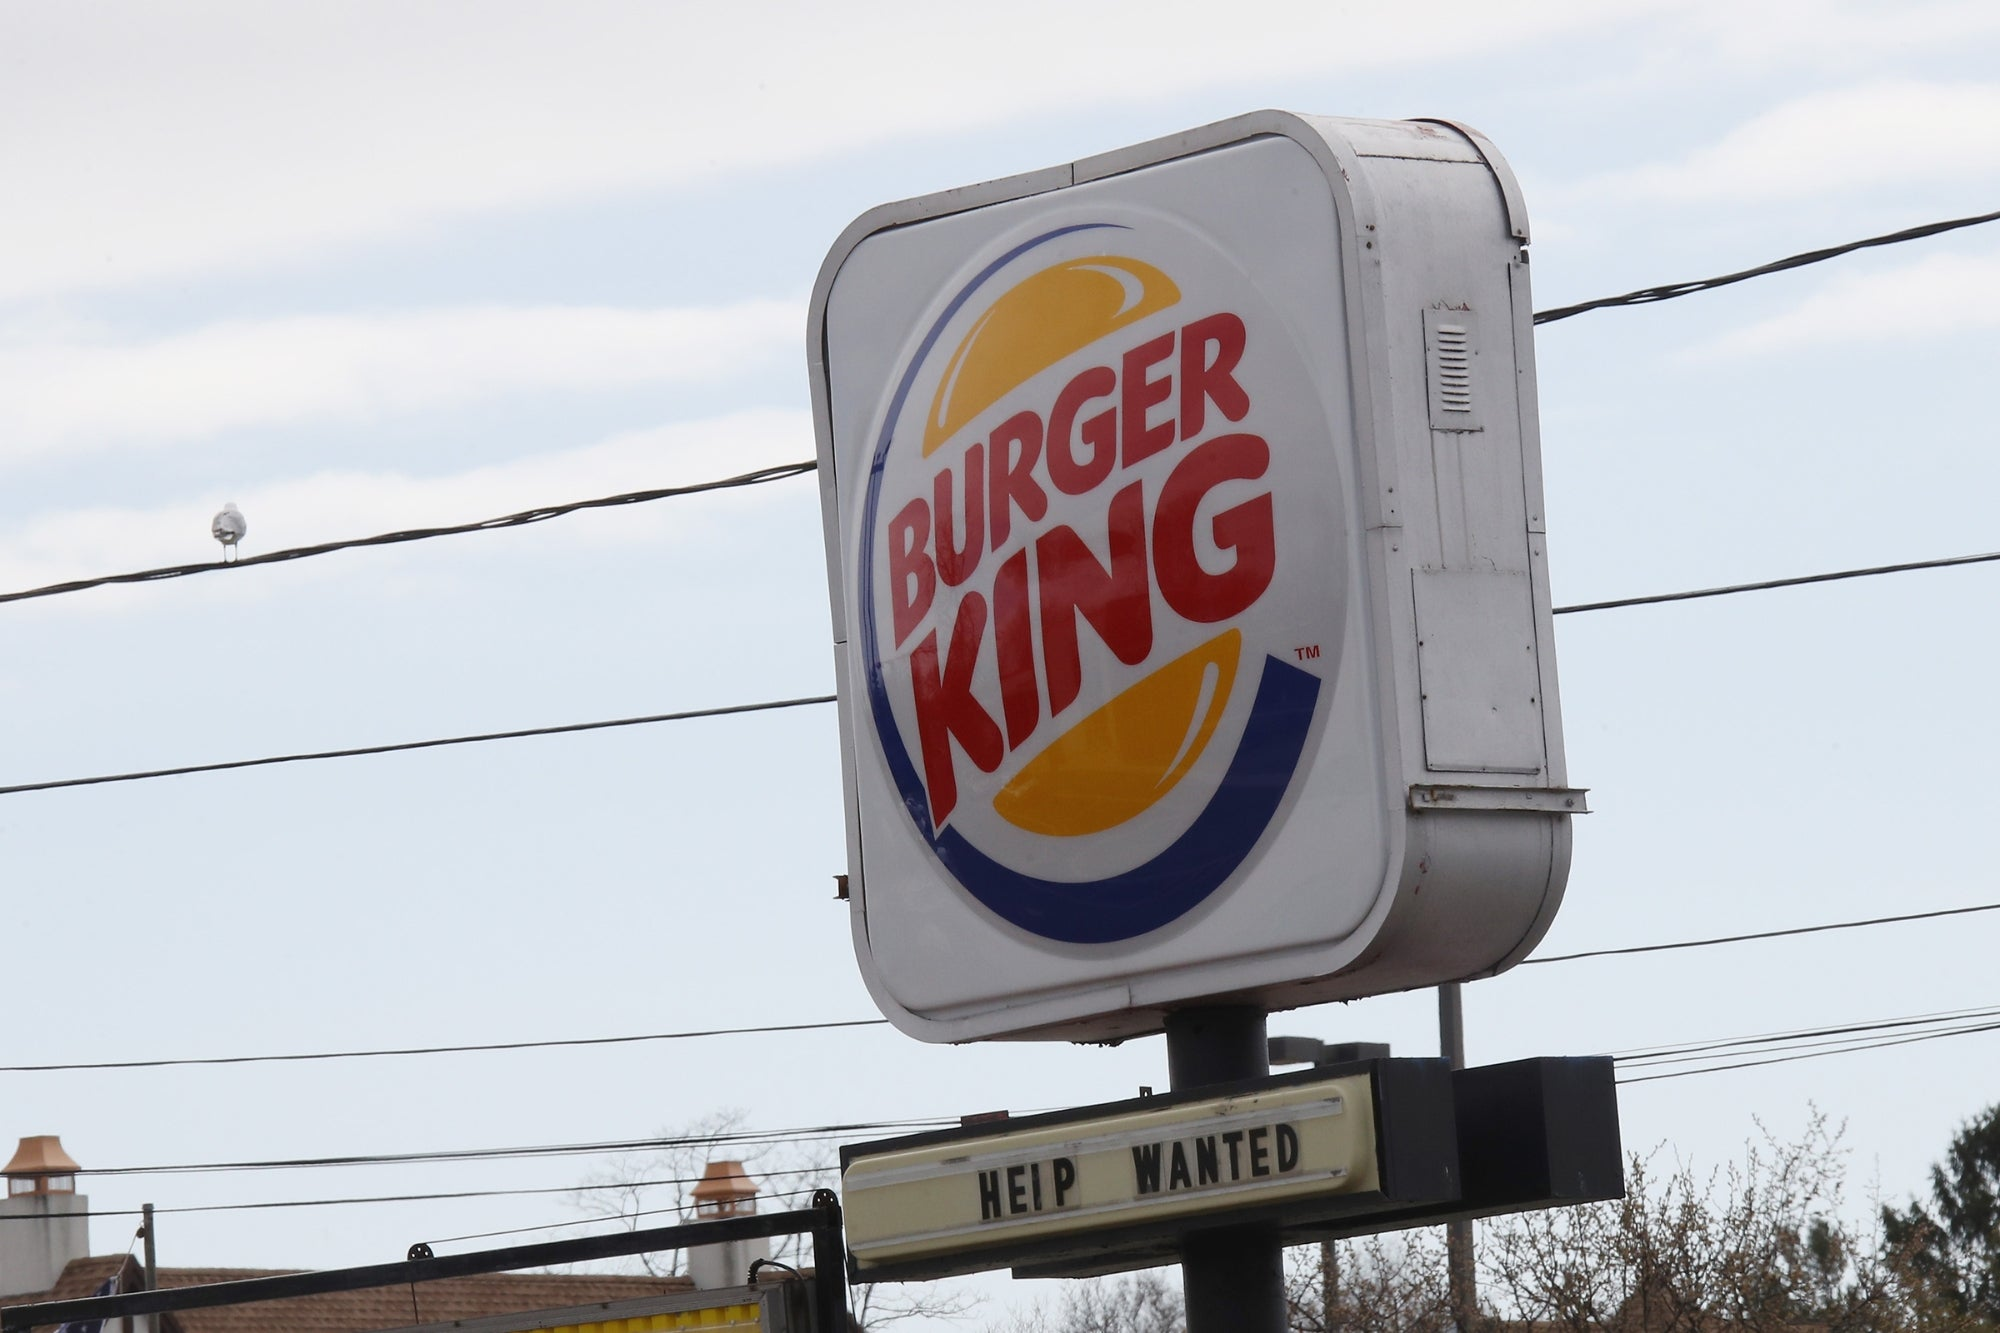 9 Employees at a Nebraska Burger King Announced Their Resignations By Writing on the Restaurant's Billboard, 'We All Quit. Sorry for the Inconvenience'